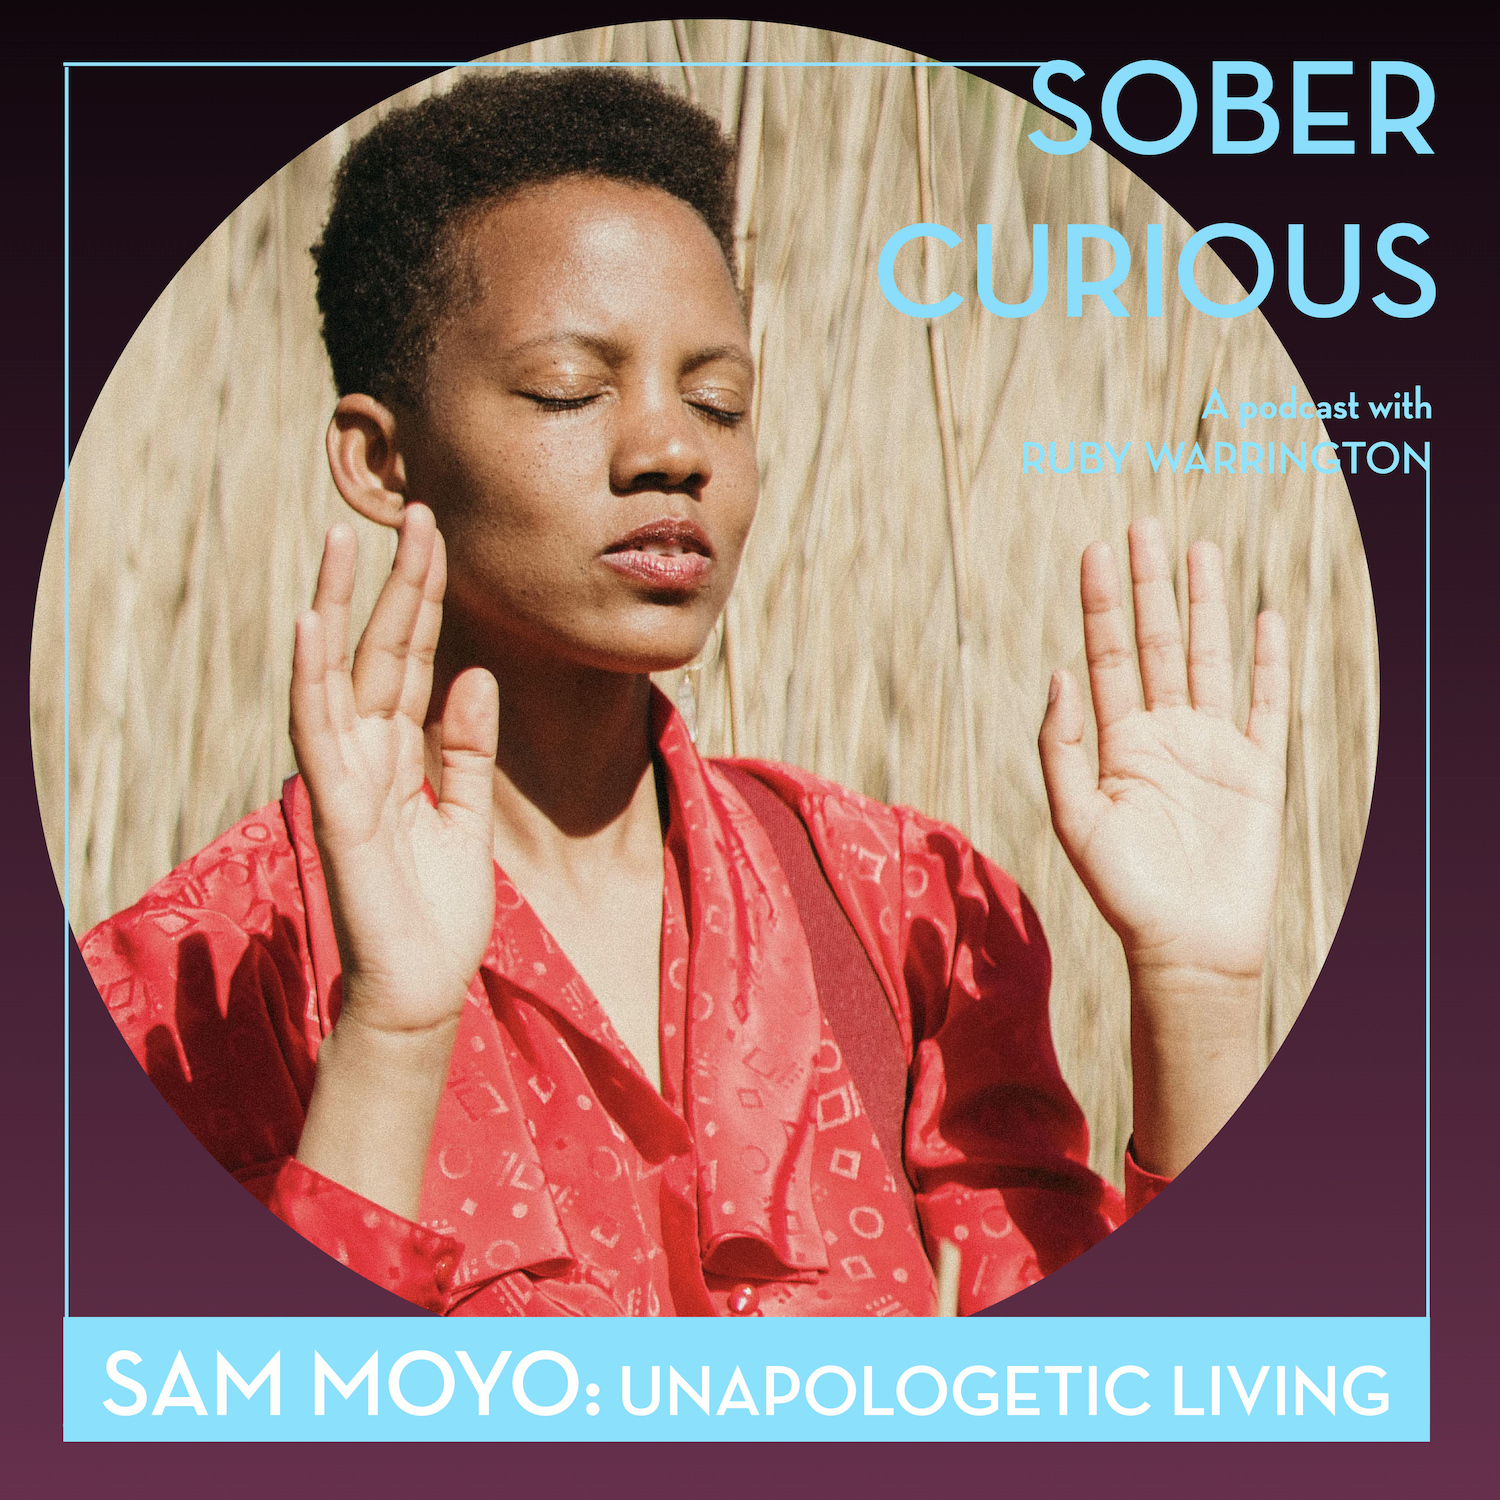 Samantha Moyo sober curious podcast ruby warrington unapologetic living